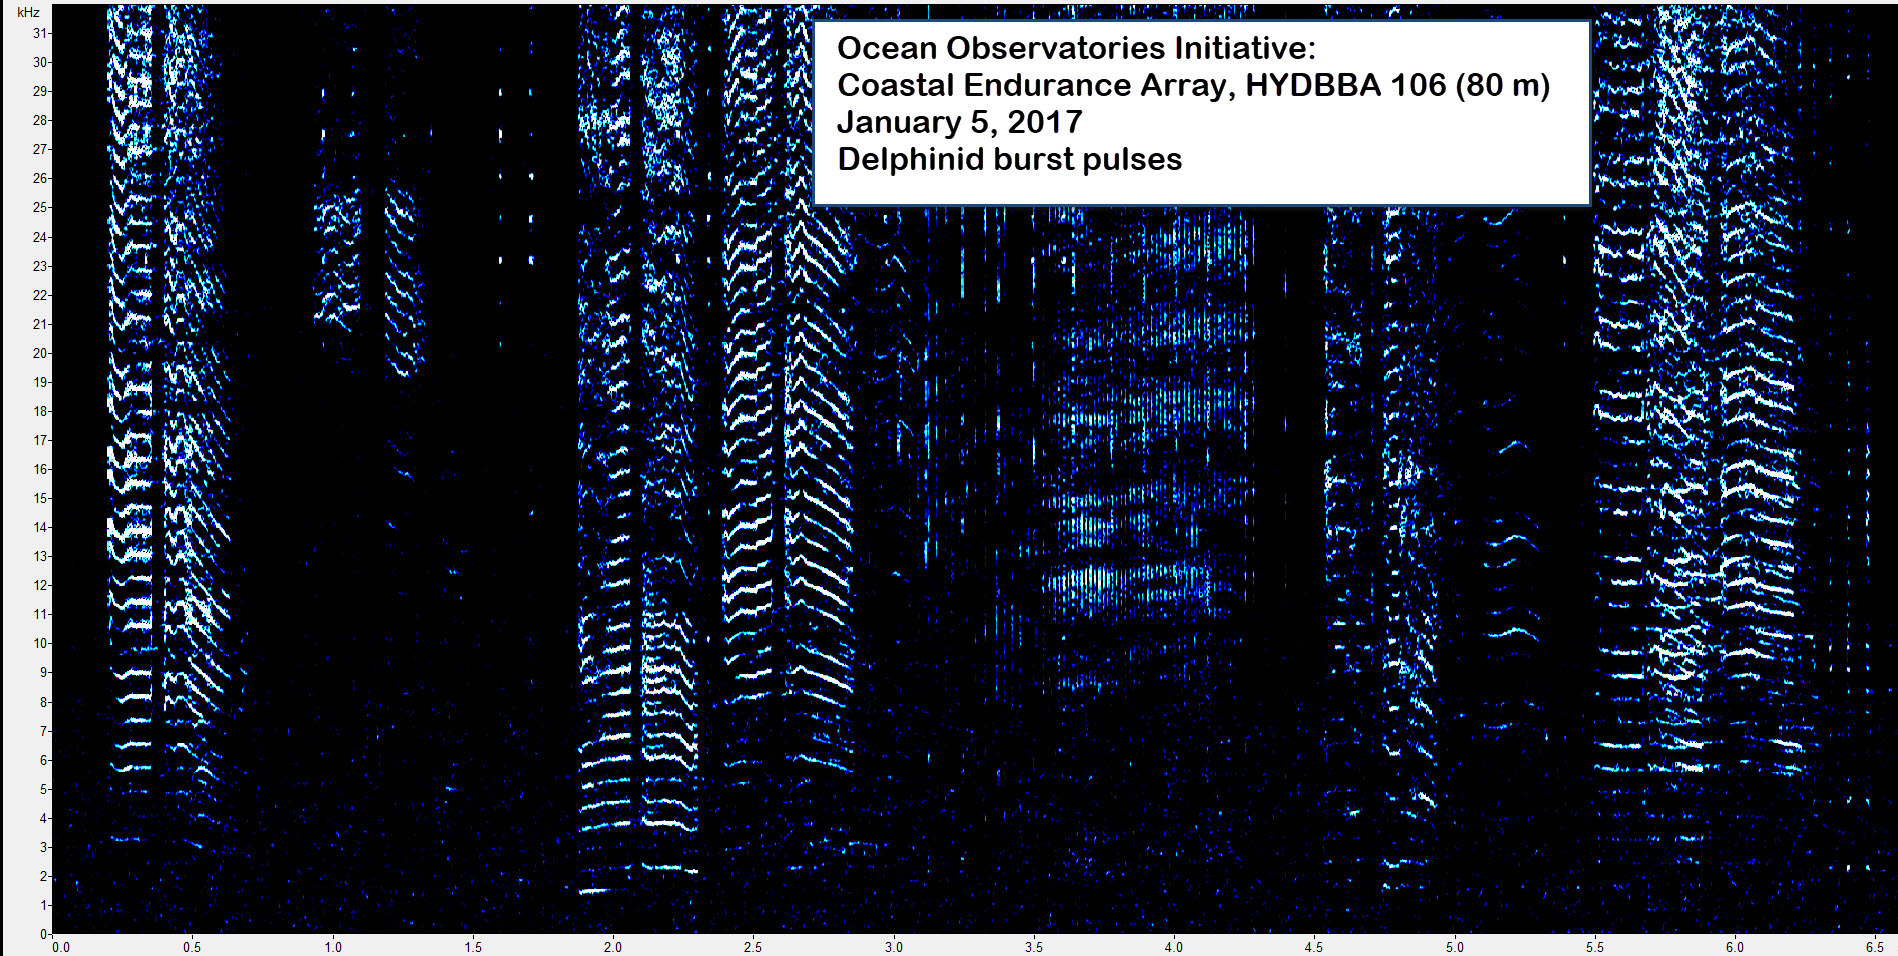 Spectrogram of an ocean dolphin (delphinid) burst pulse from the OOI Coastal Endurance Array